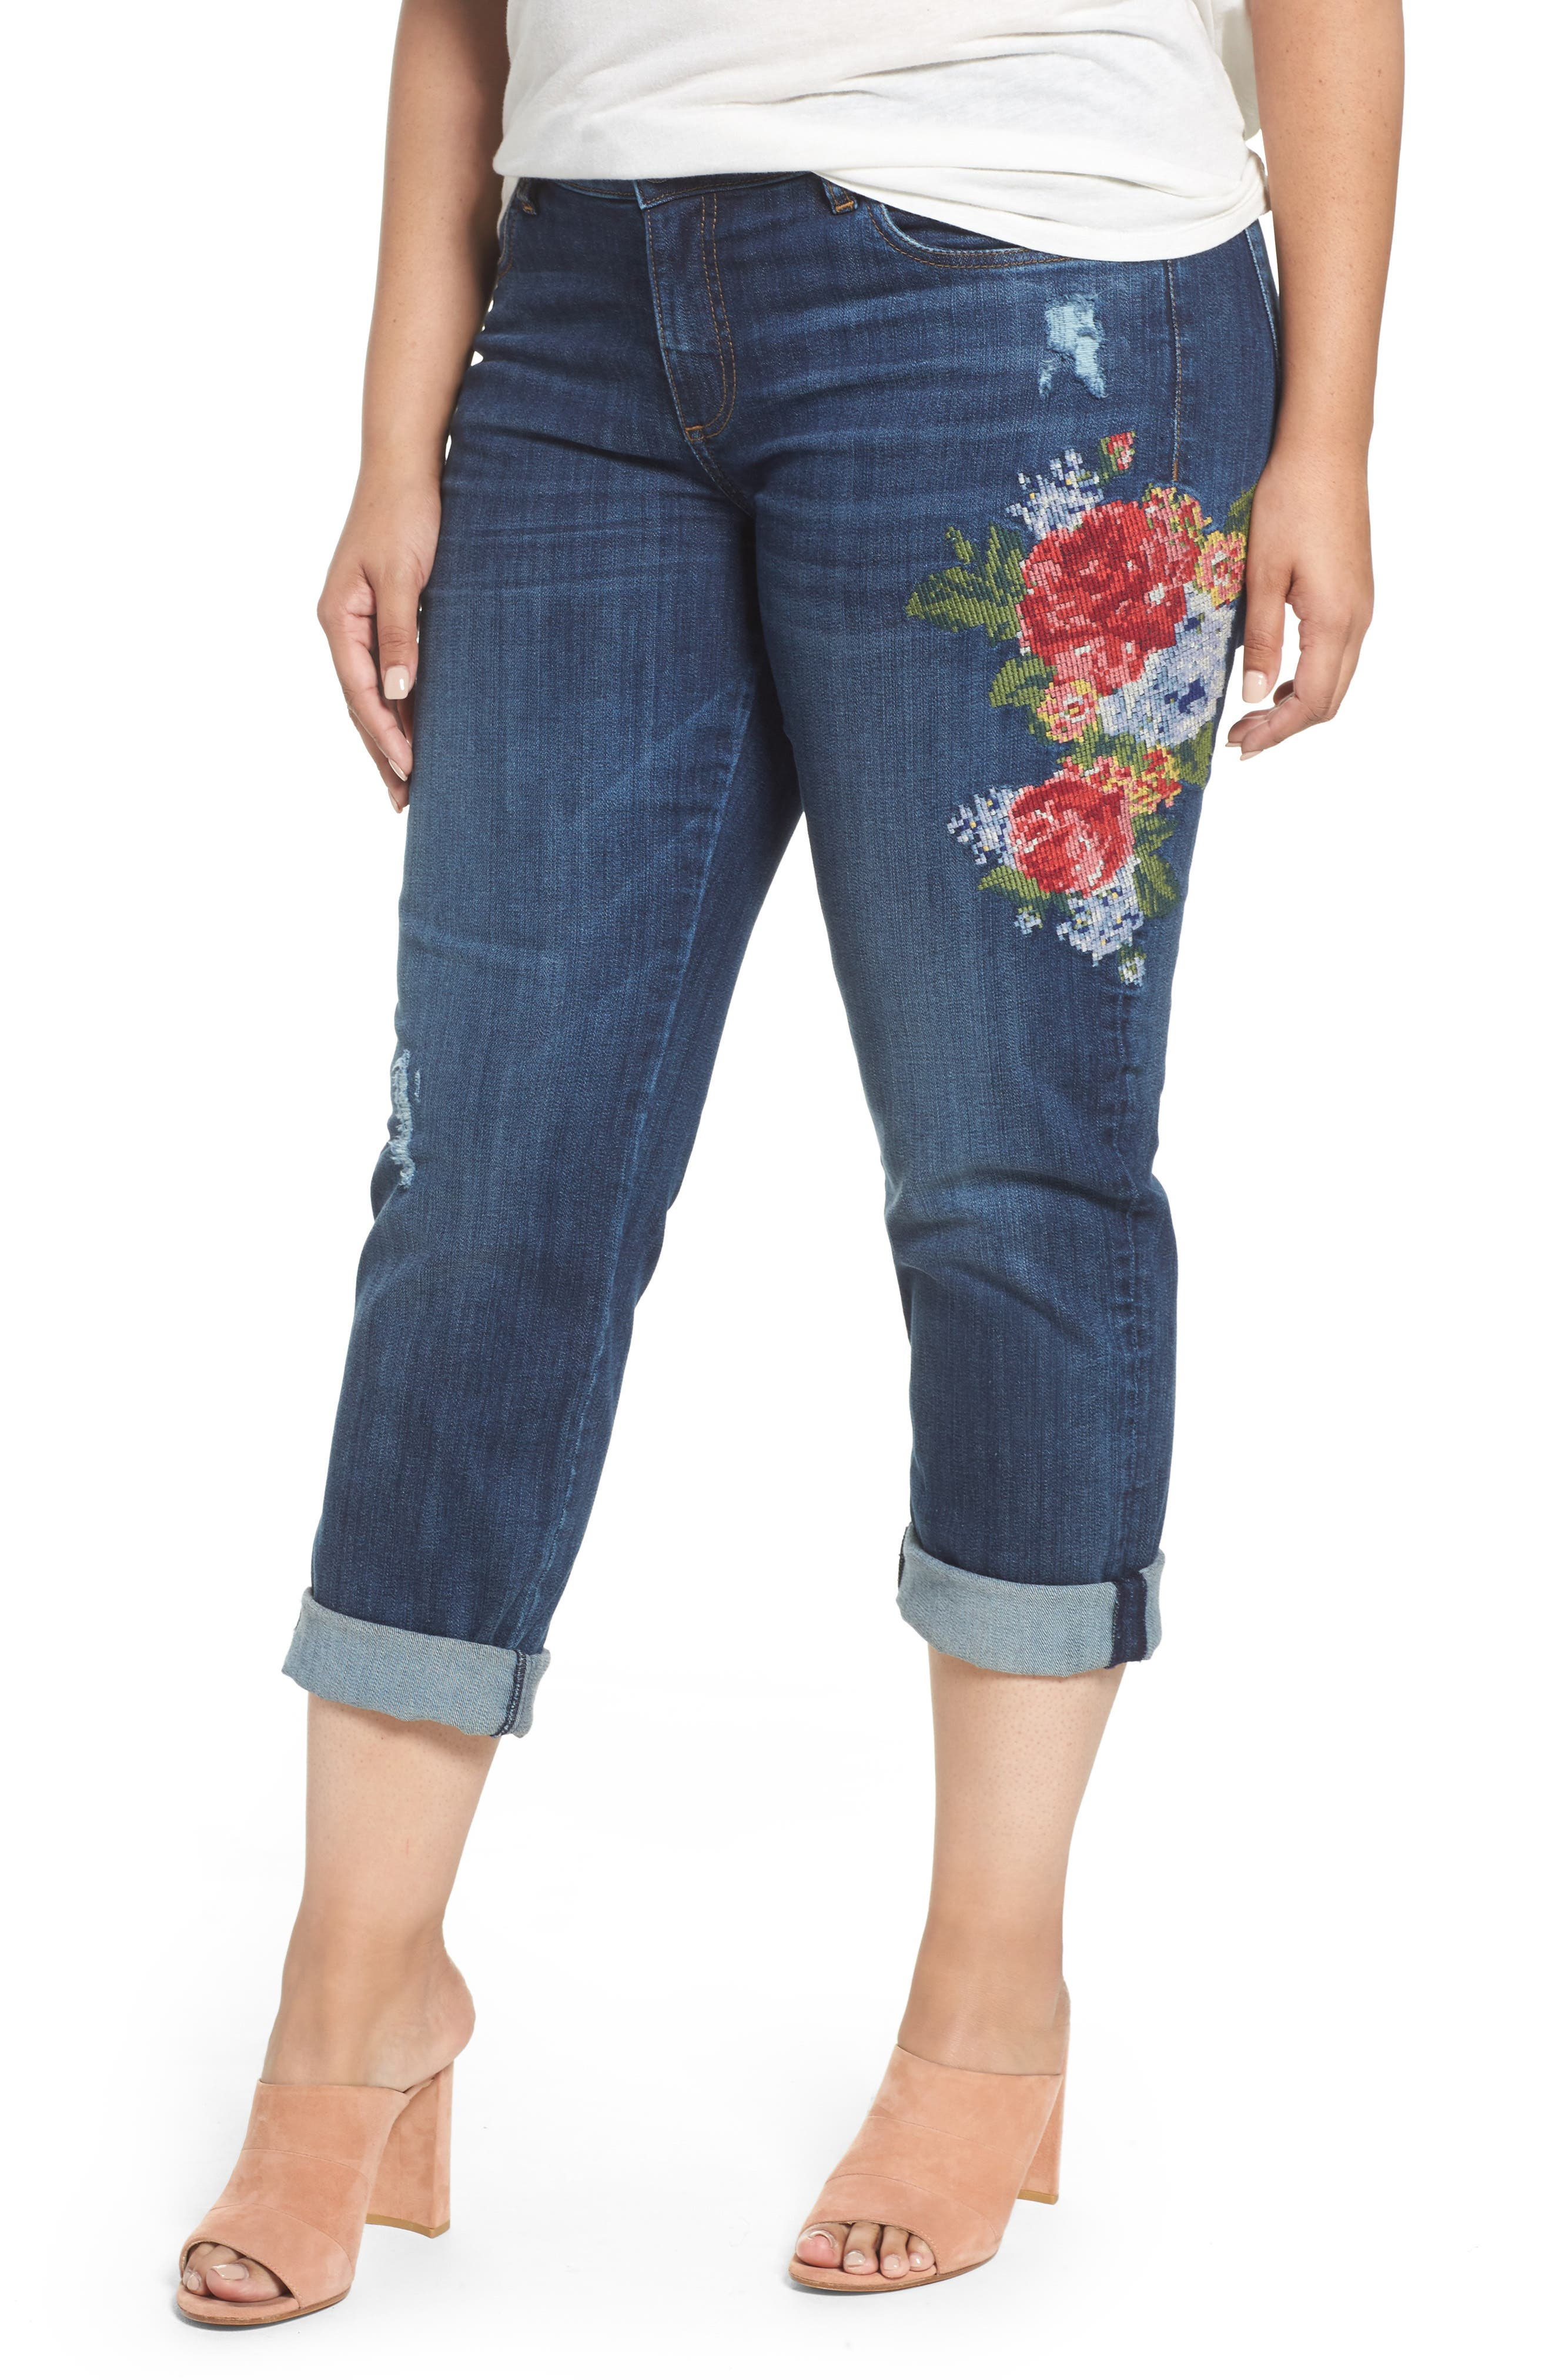 KUT from the Kloth Catherine Embroidered Boyfriend Jeans (Premier Dark) (Plus Size)